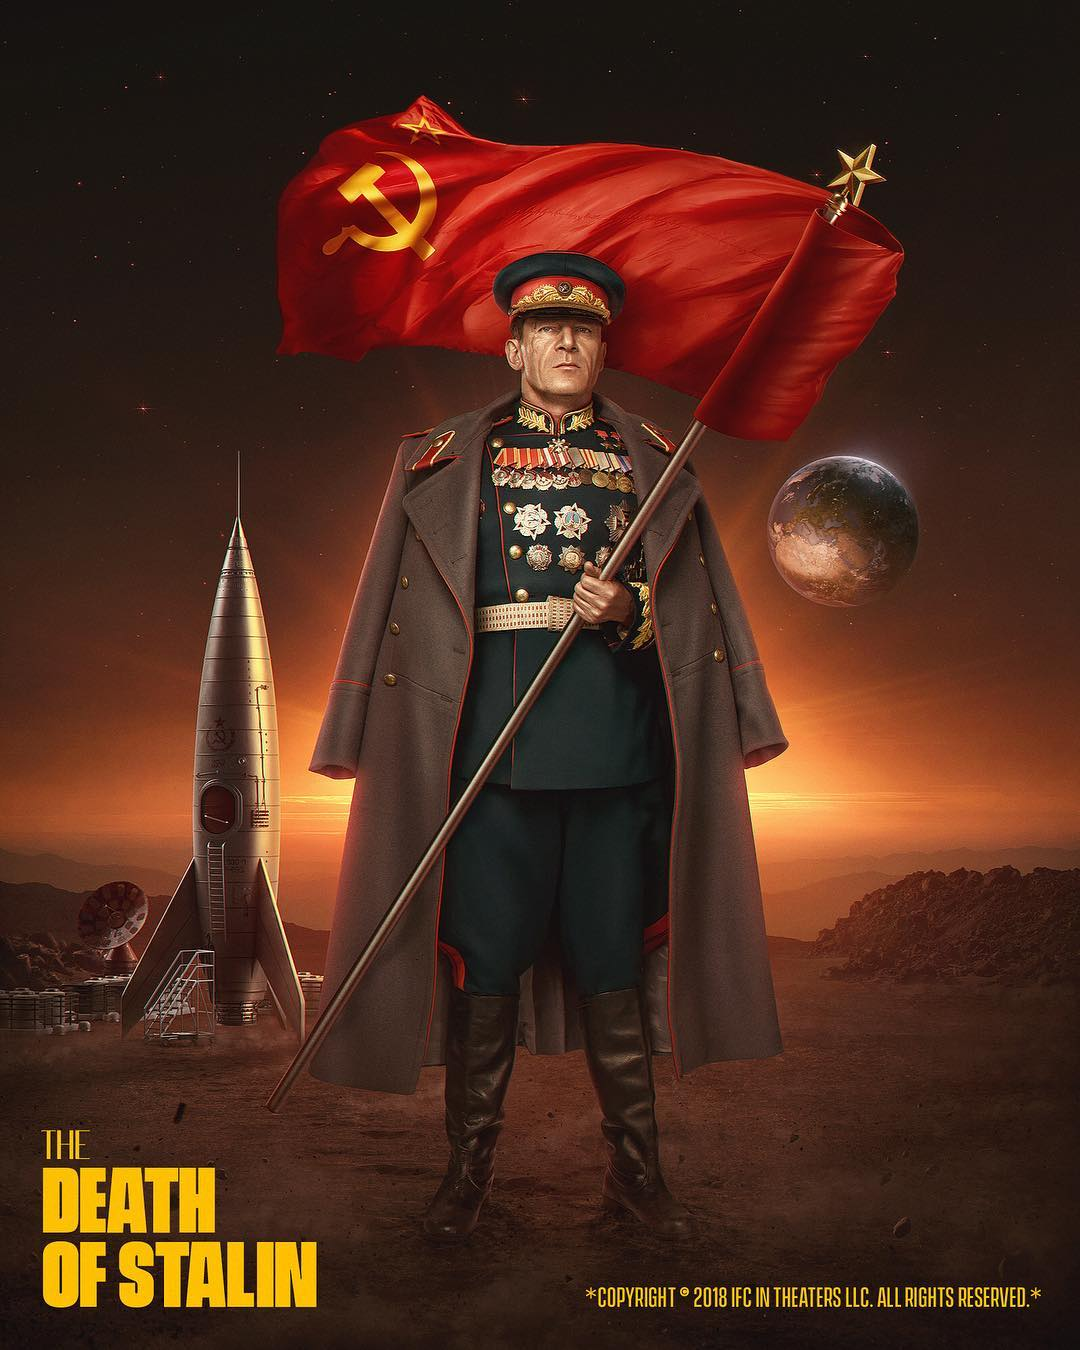 The Death of Stalin / IFC Films